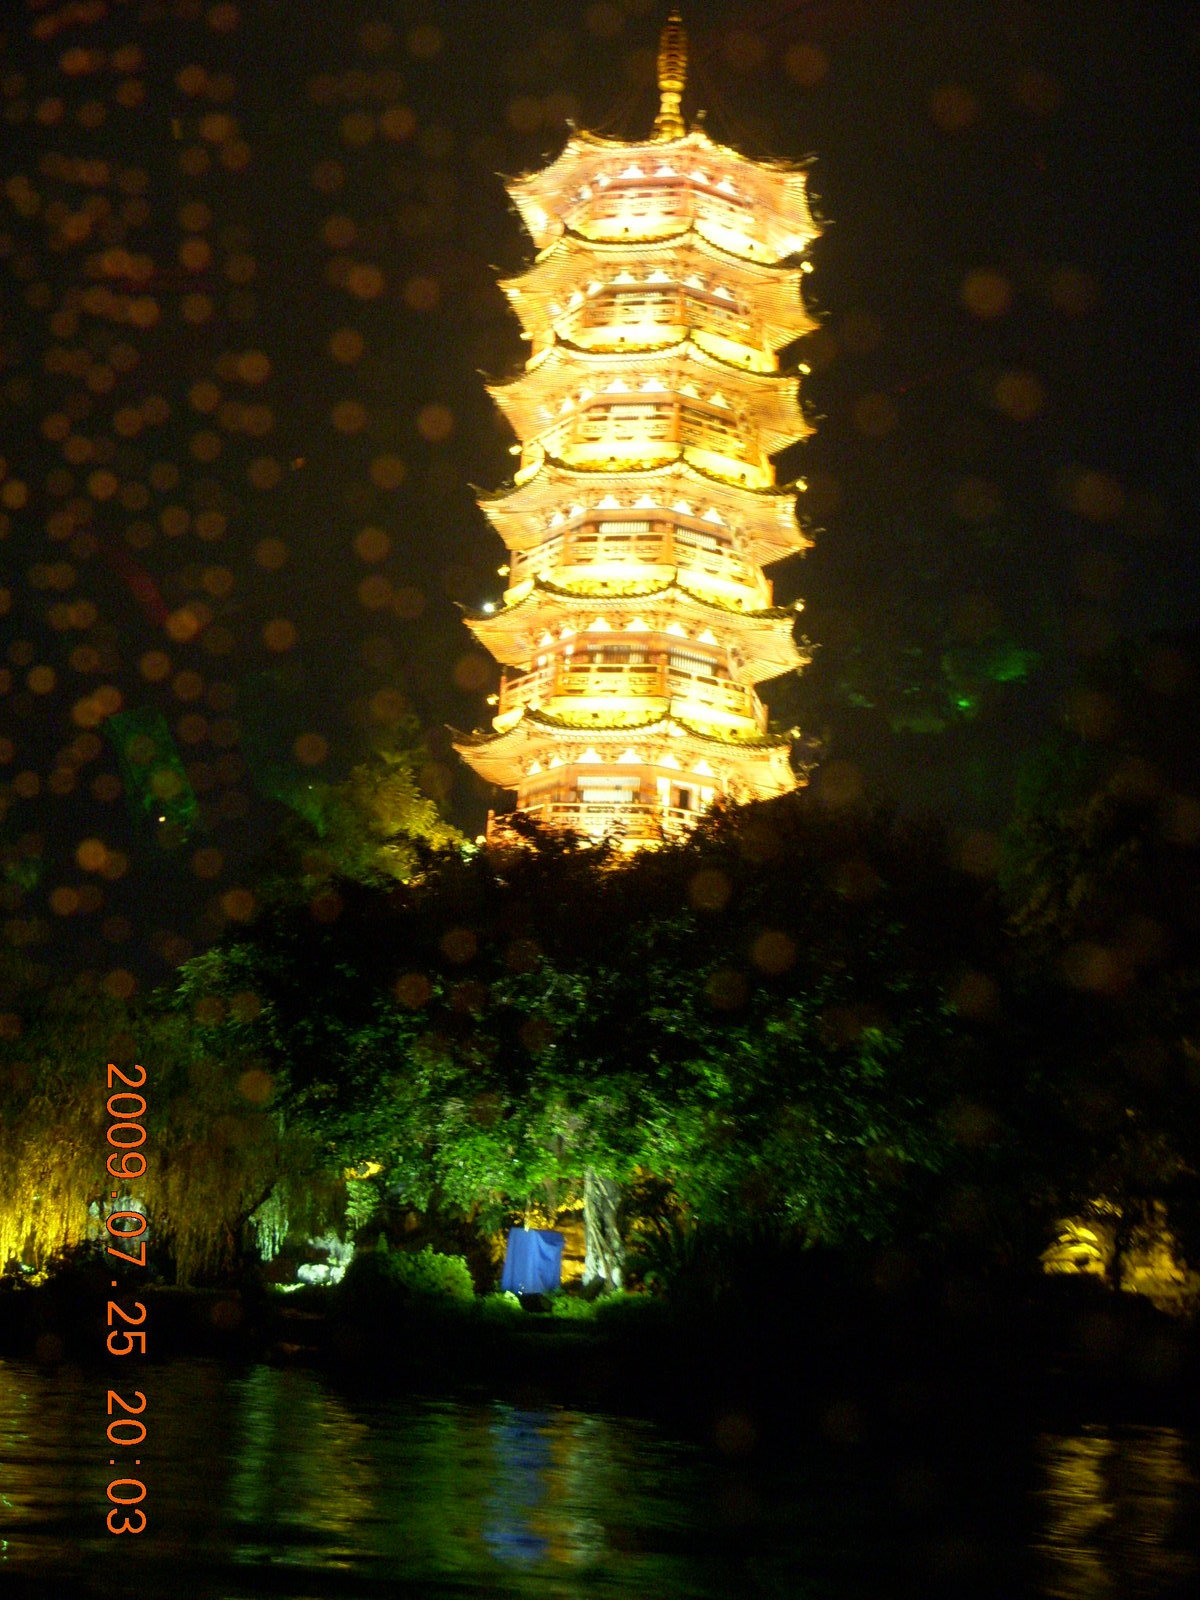 China eclipse - Guilin evening boat tour - sun pagoda